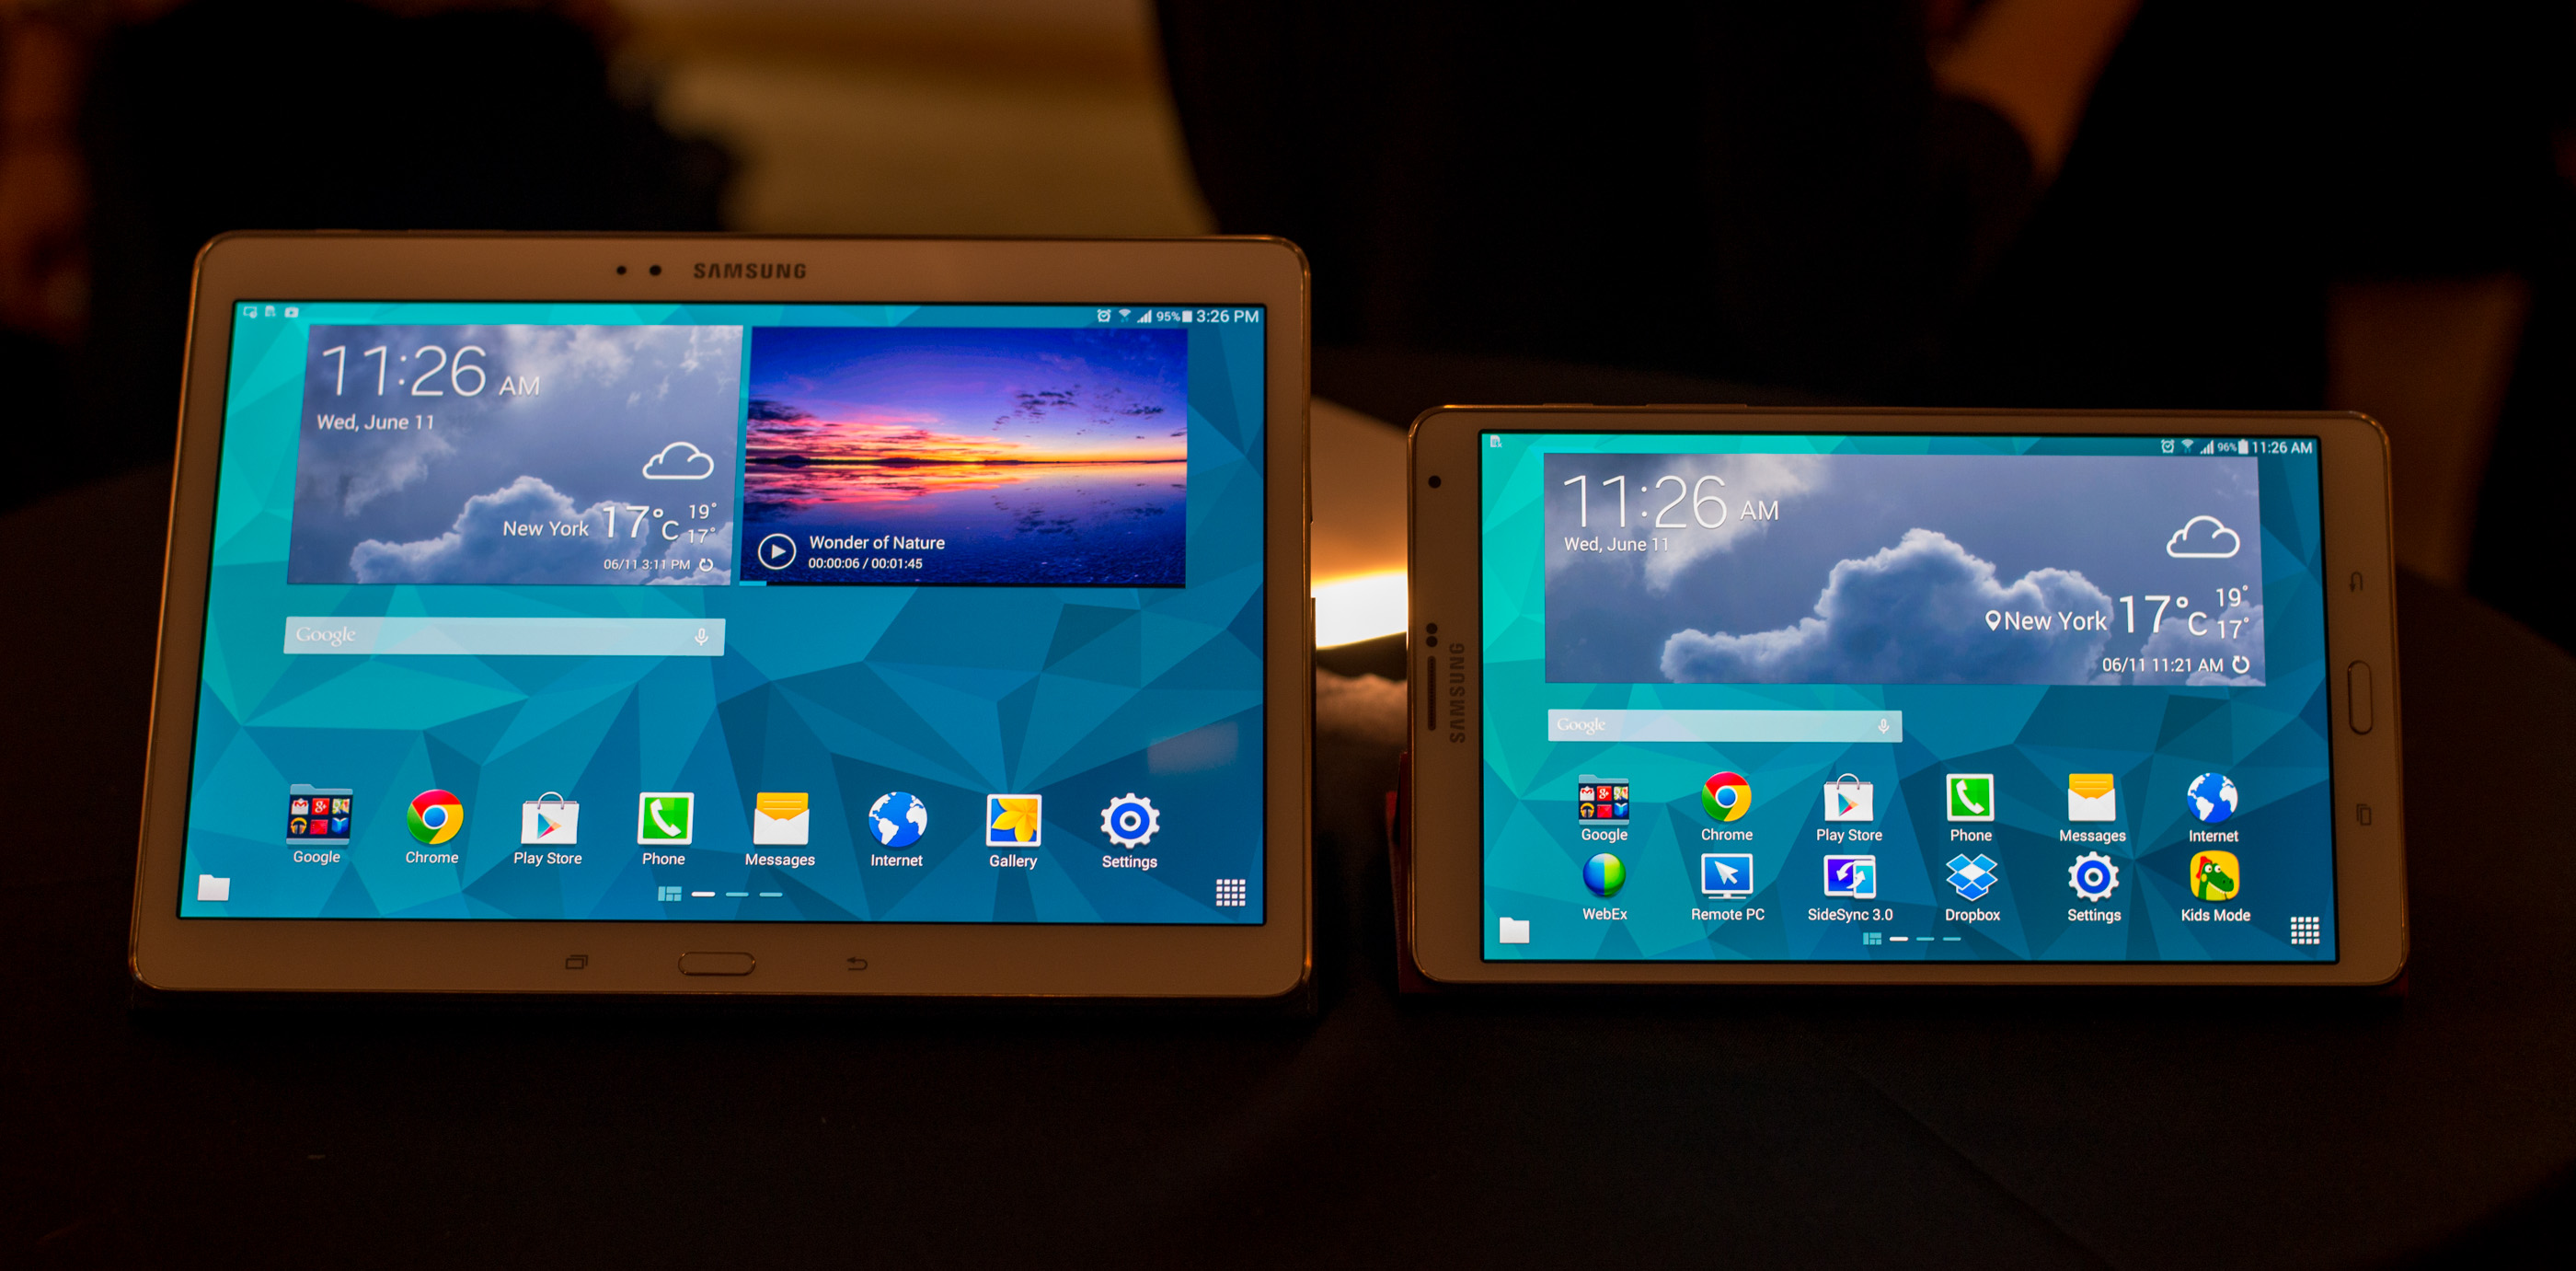 samsung 39 s galaxy tab s 10 5 8 4 hands on with samsung 39 s. Black Bedroom Furniture Sets. Home Design Ideas